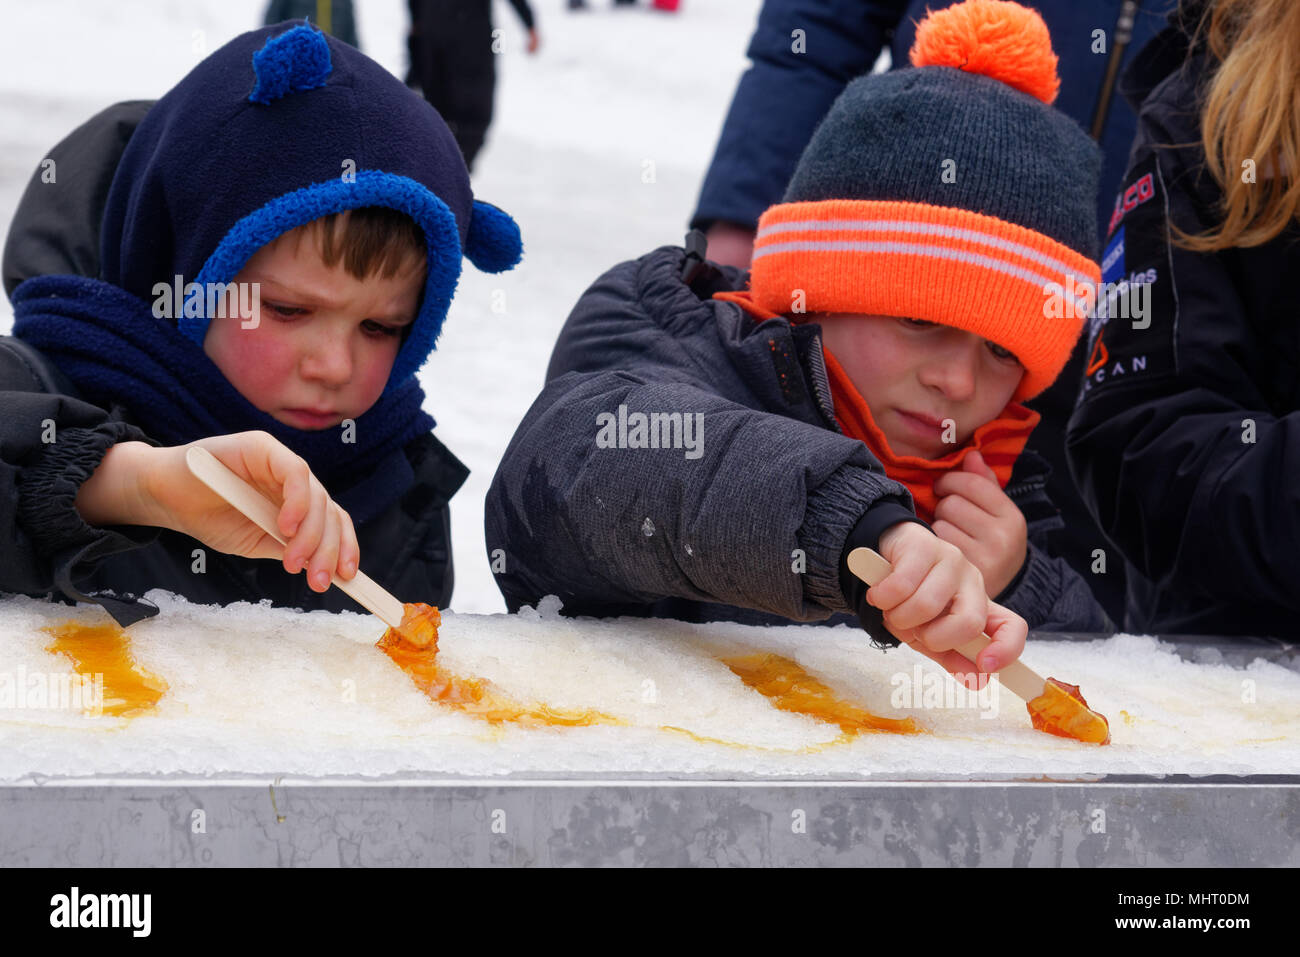 Two young boys eating maple syrup taffy poured on ice at a sugar shack in Quebec, Canada - Stock Image